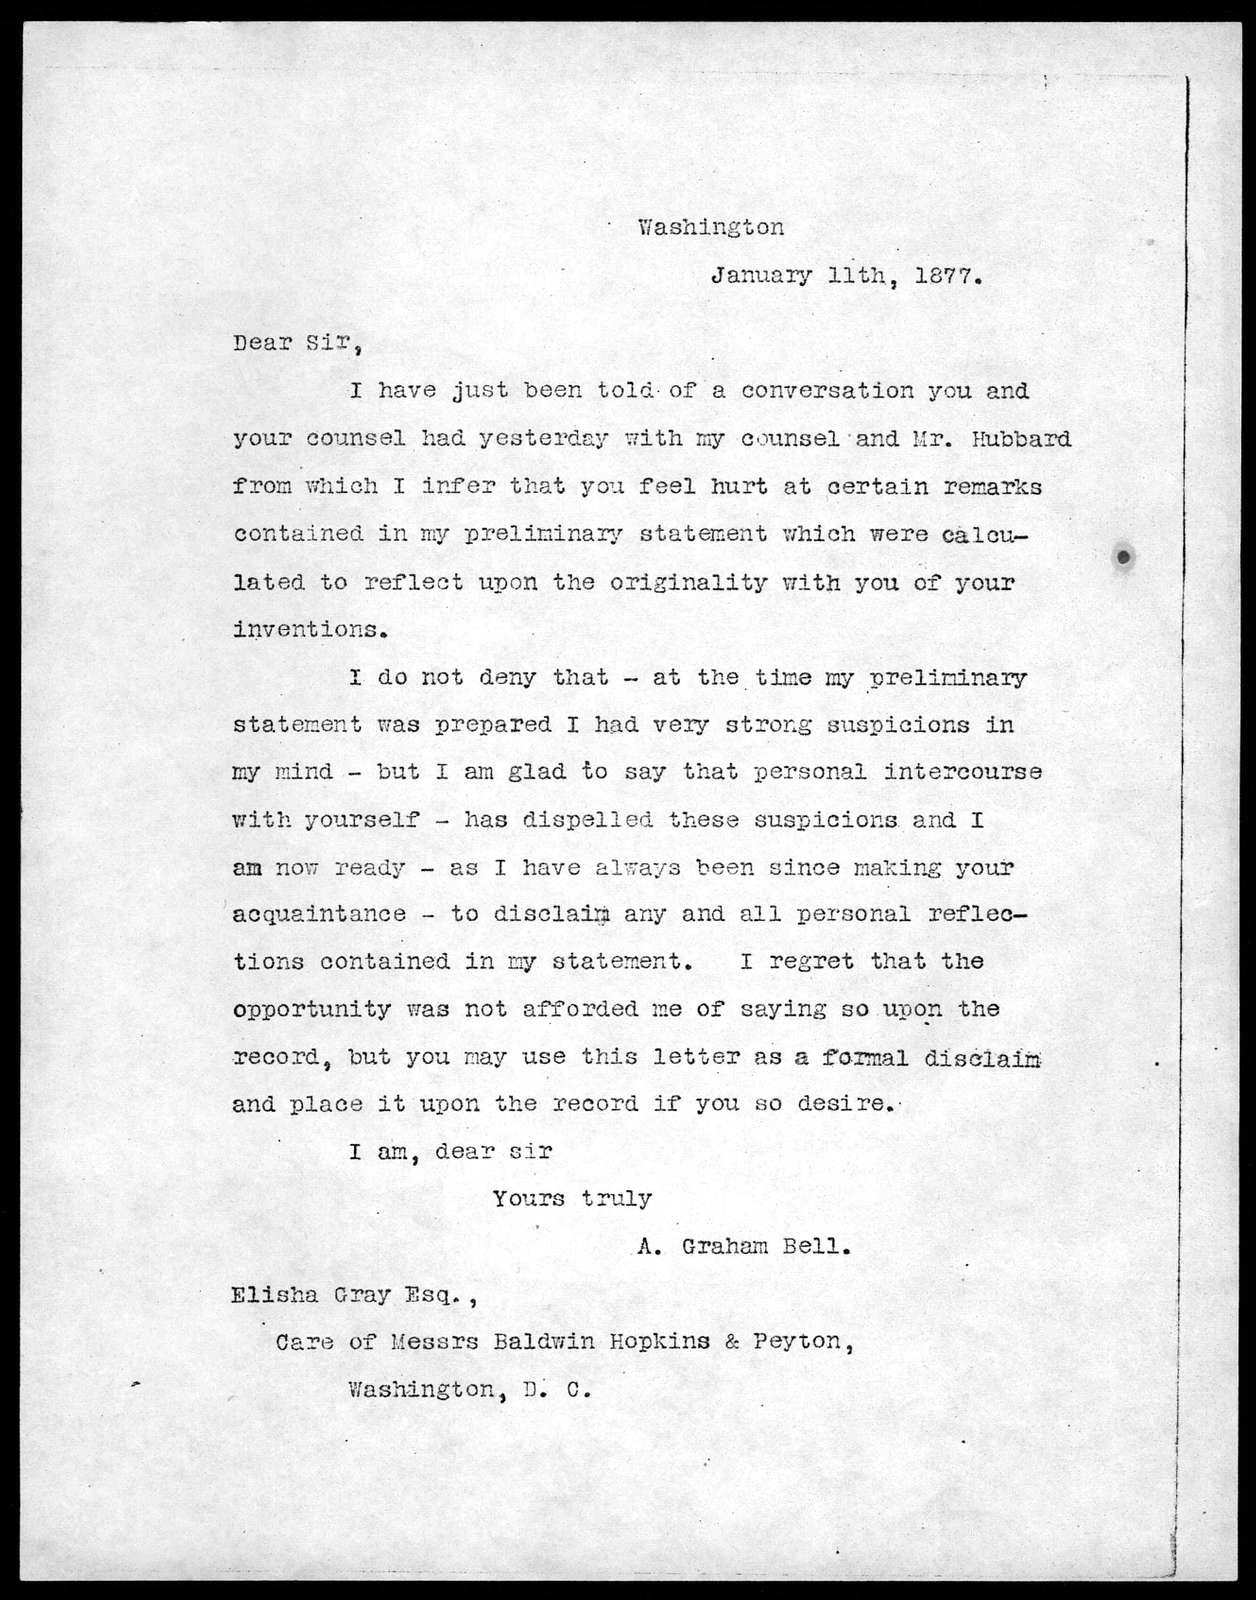 Letter from Alexander Graham Bell to Elisha Gray, January 11, 1877